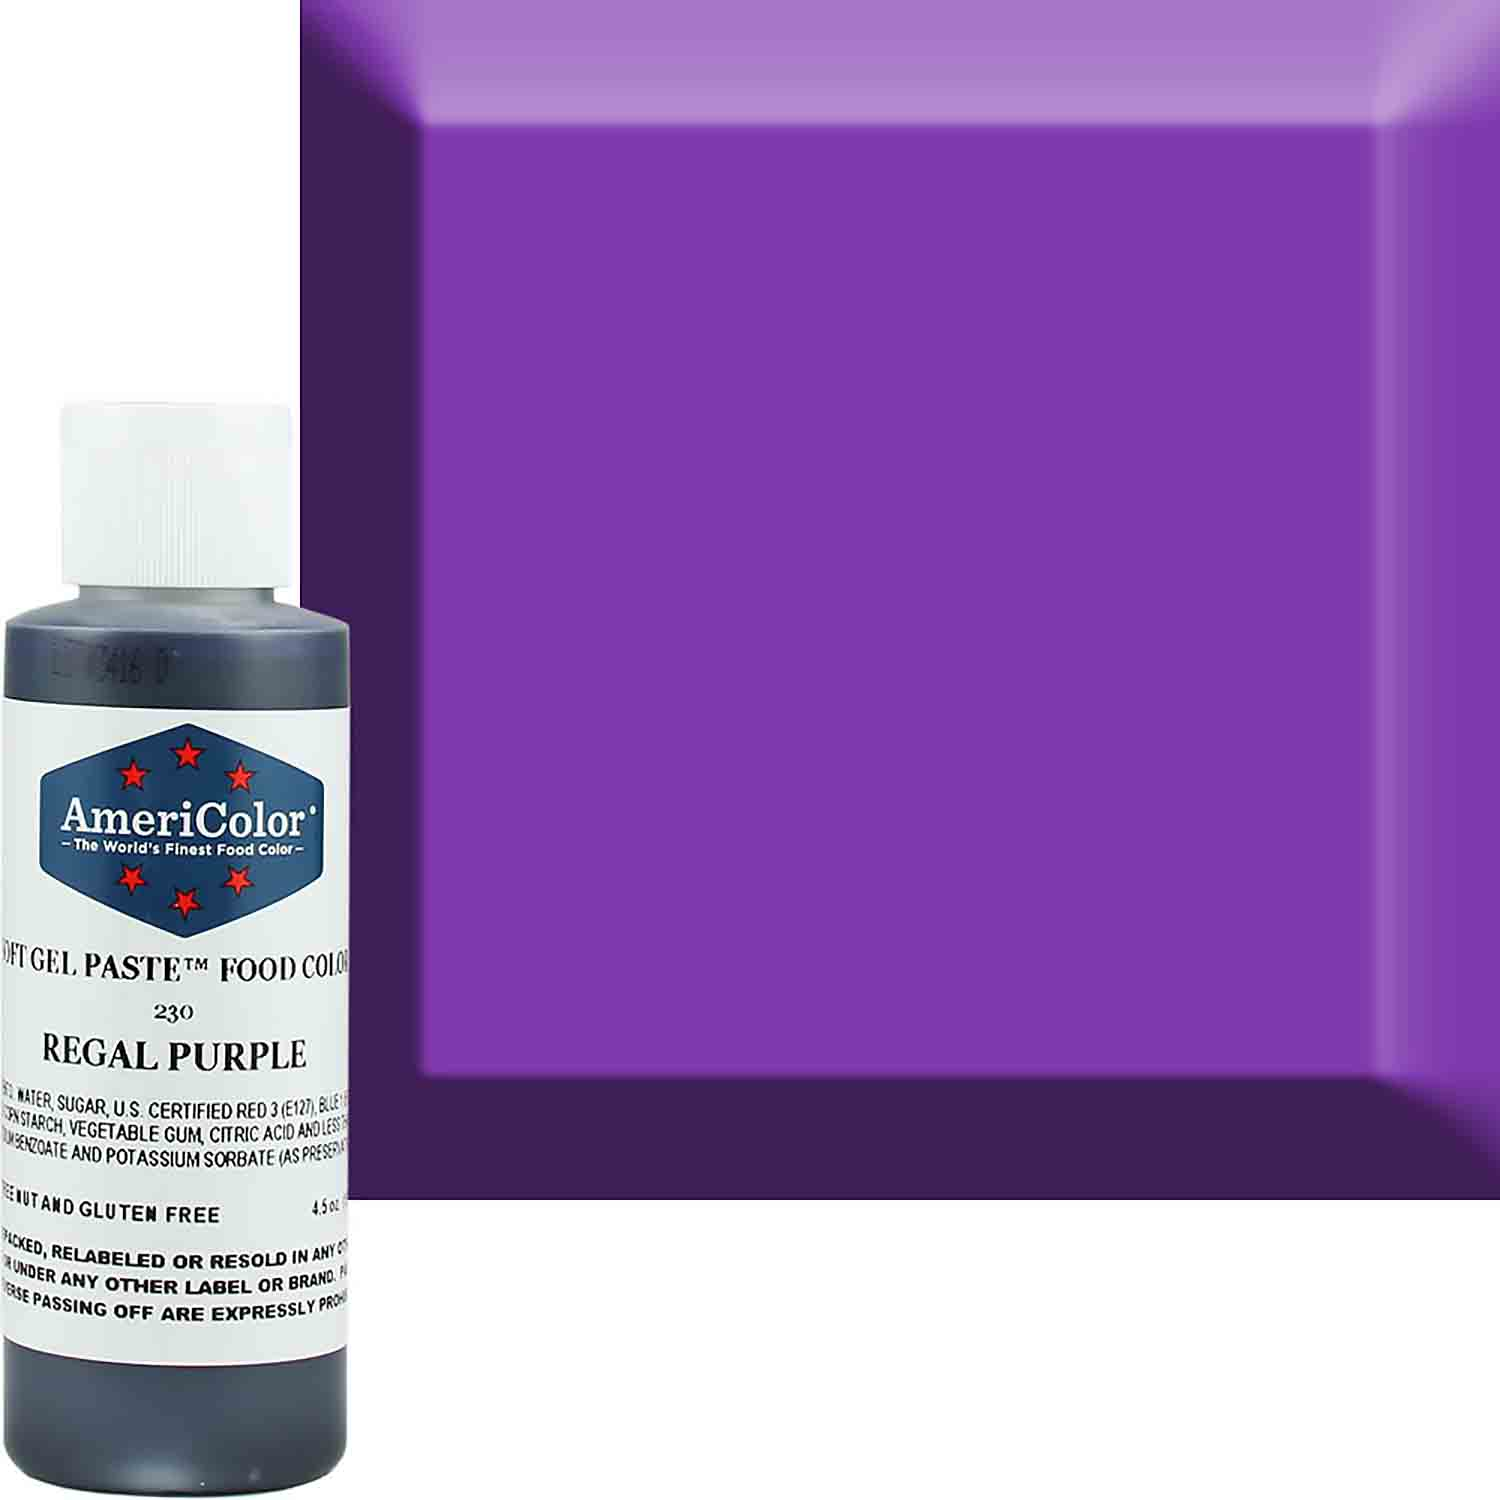 Regal Purple Soft Gel Paste™ Food Color